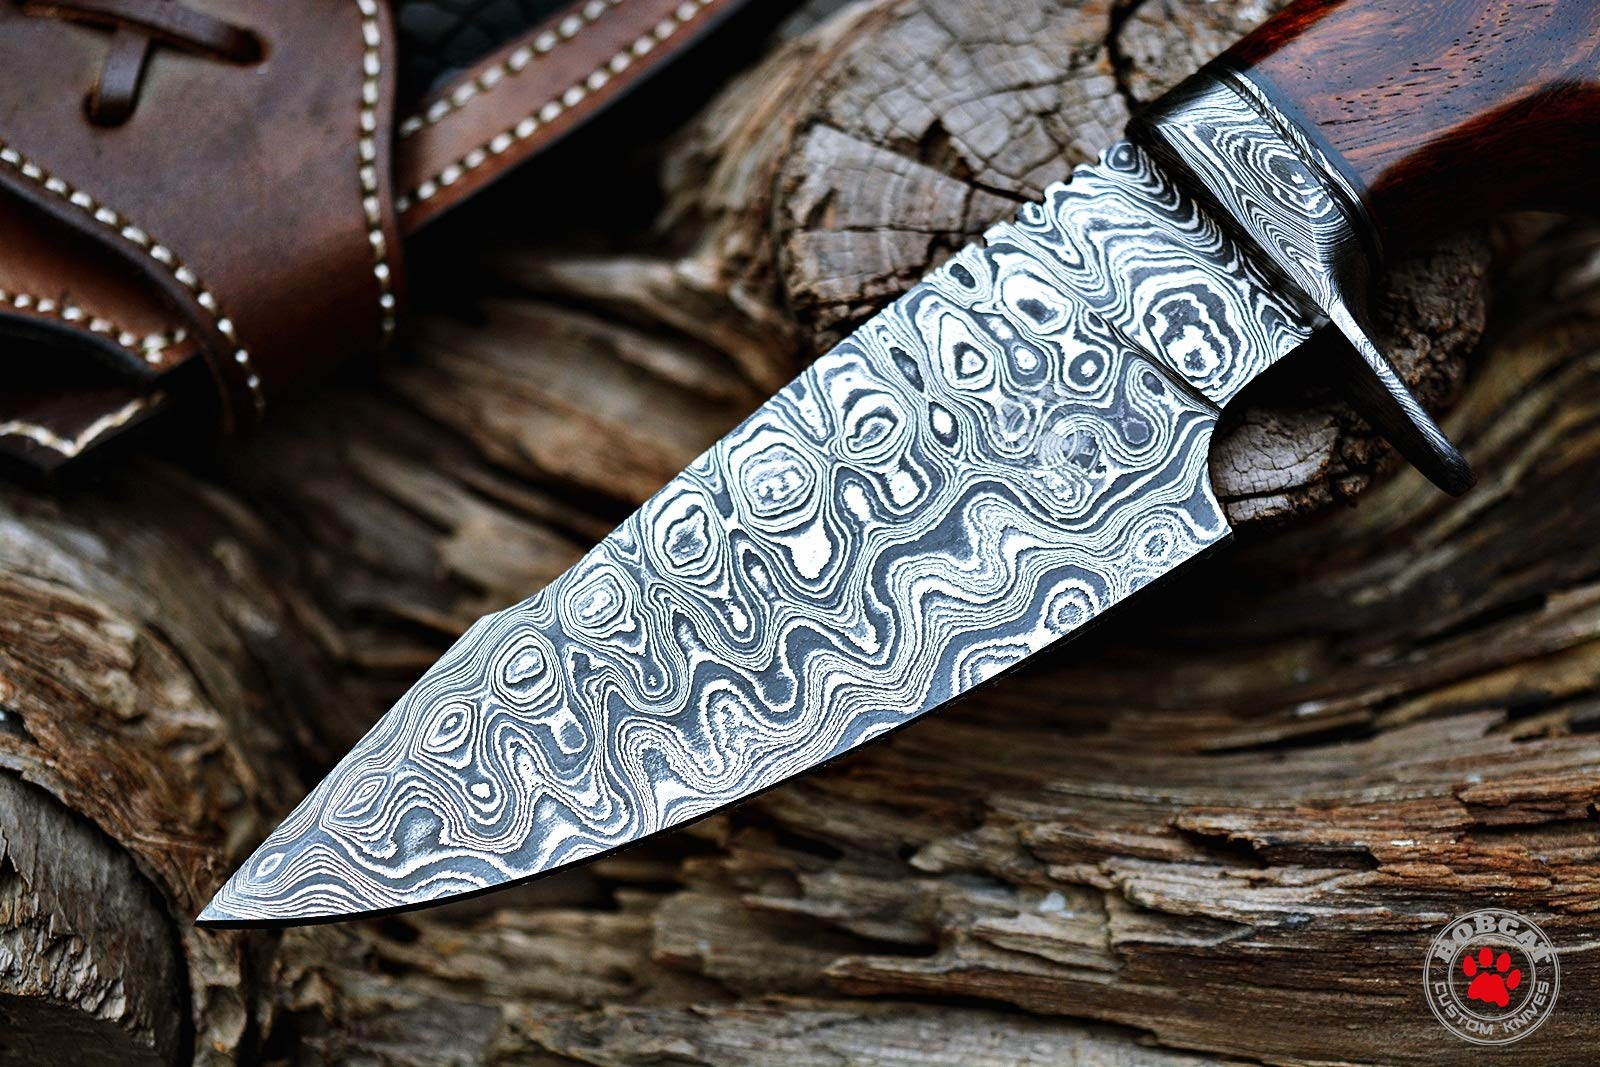 Custom Handmade Hunting Knife Bowie Knife Damascus Steel Survival Knife EDC 10'' Overall Walnut Wood with Sheath by Bobcat Knives (Image #9)